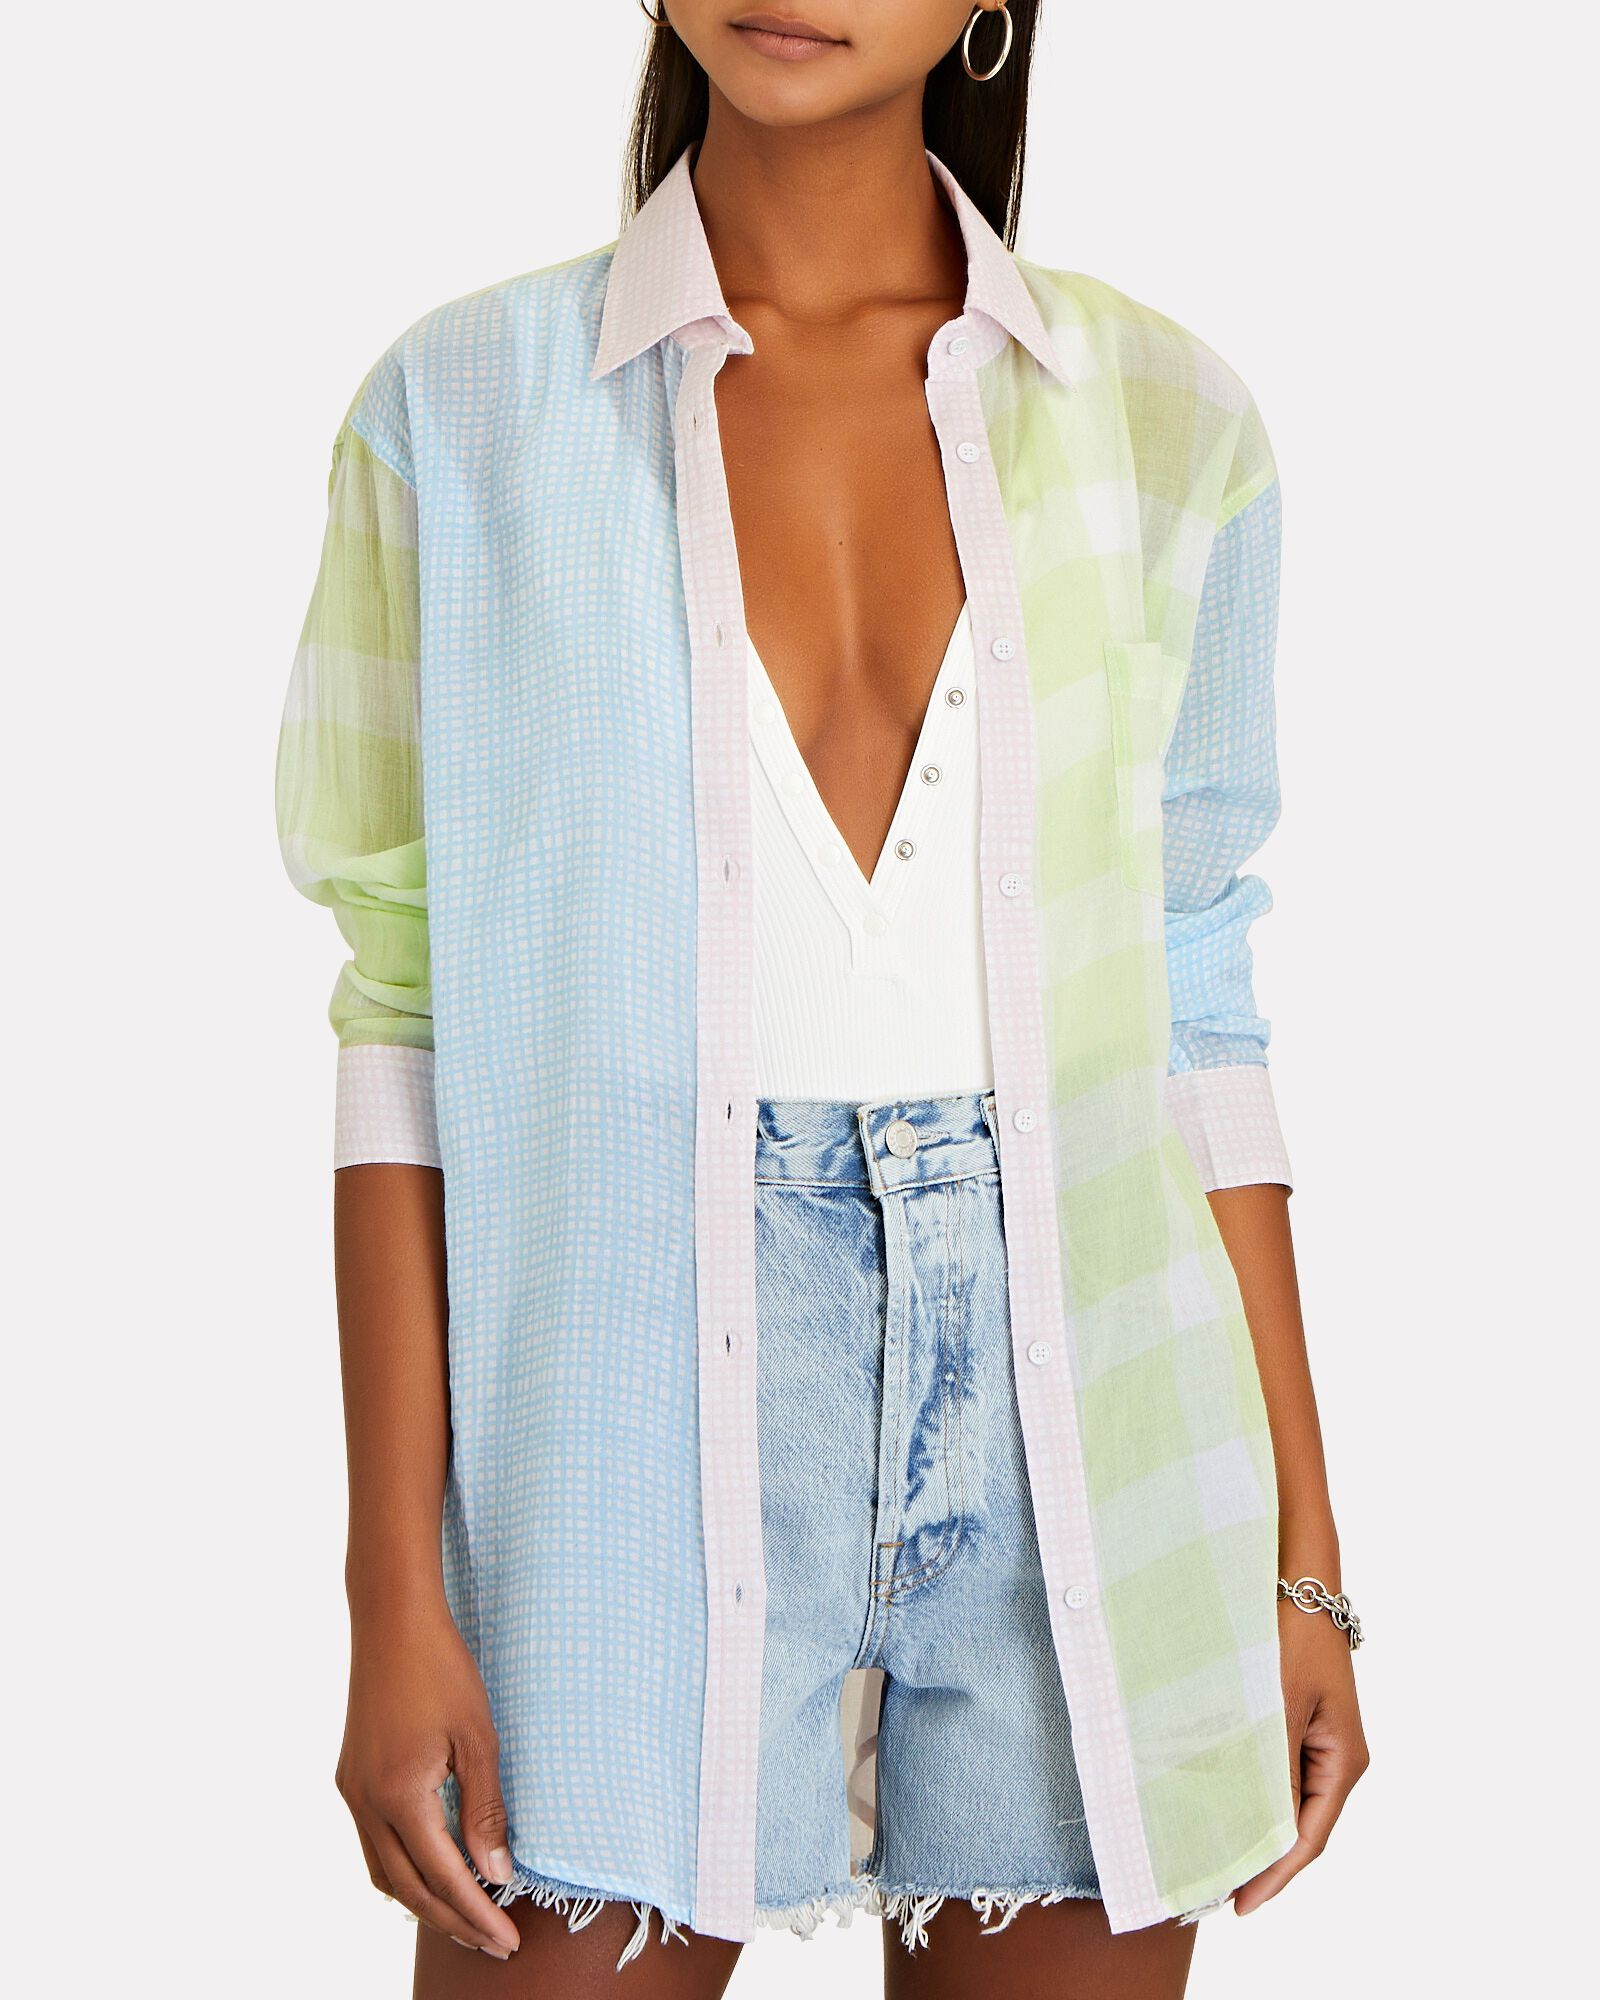 Gingham Oversized Button-Down Shirt, BLUE/GREEN/PINK, hi-res